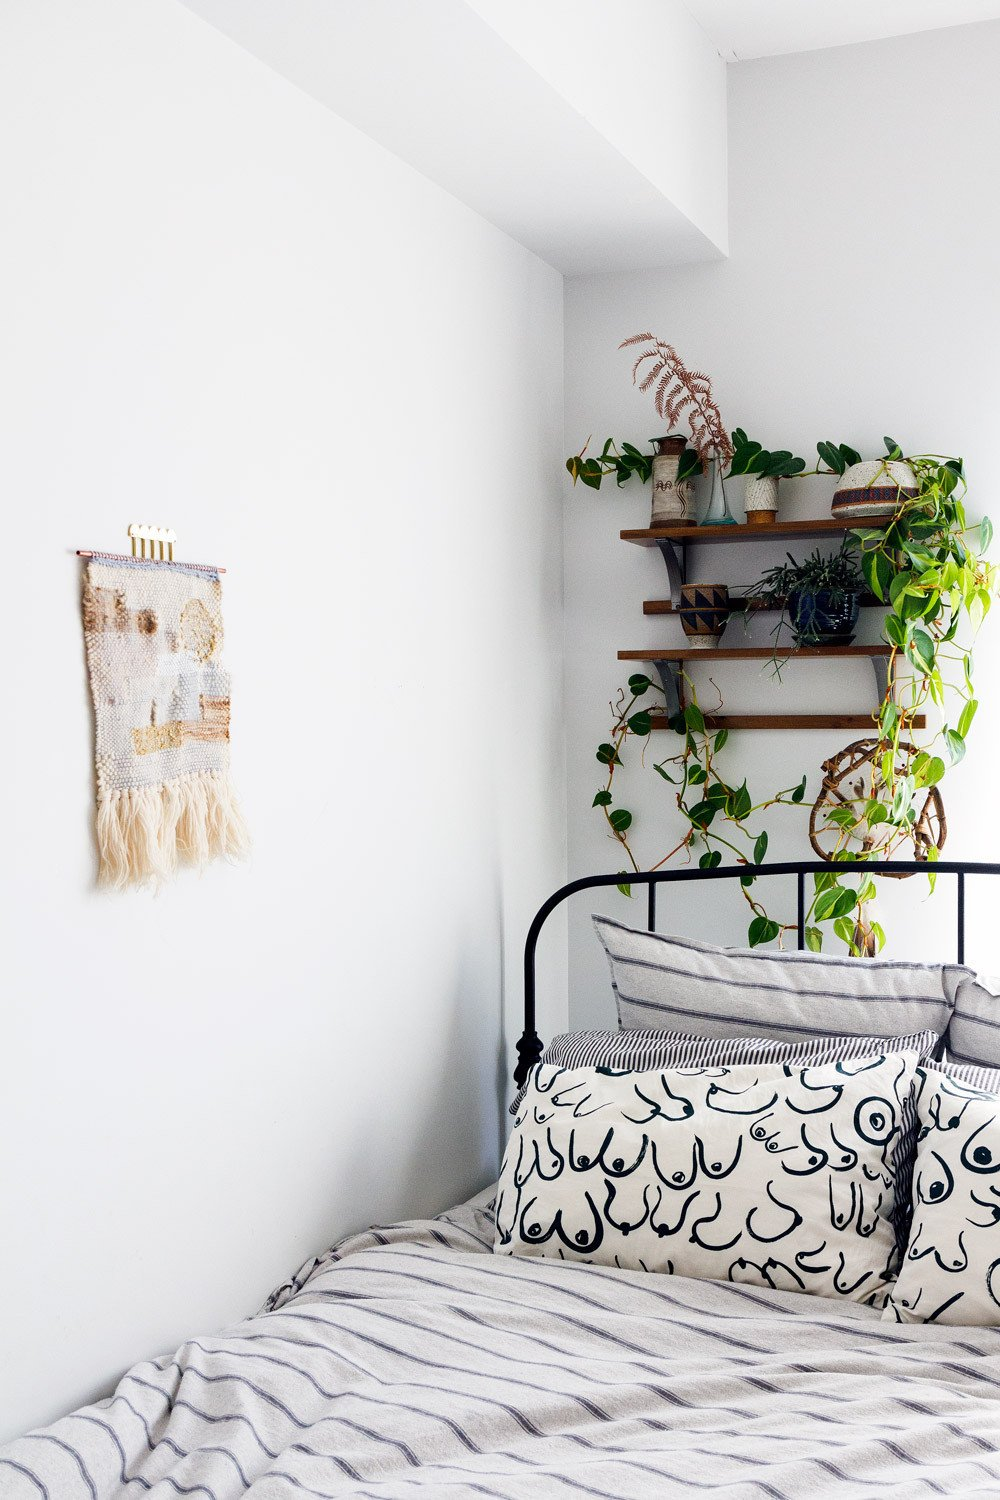 White Wall Decor for Bedroom Luxury the White Wall Controversy How the All White Aesthetic Has Affected Design – Design Sponge